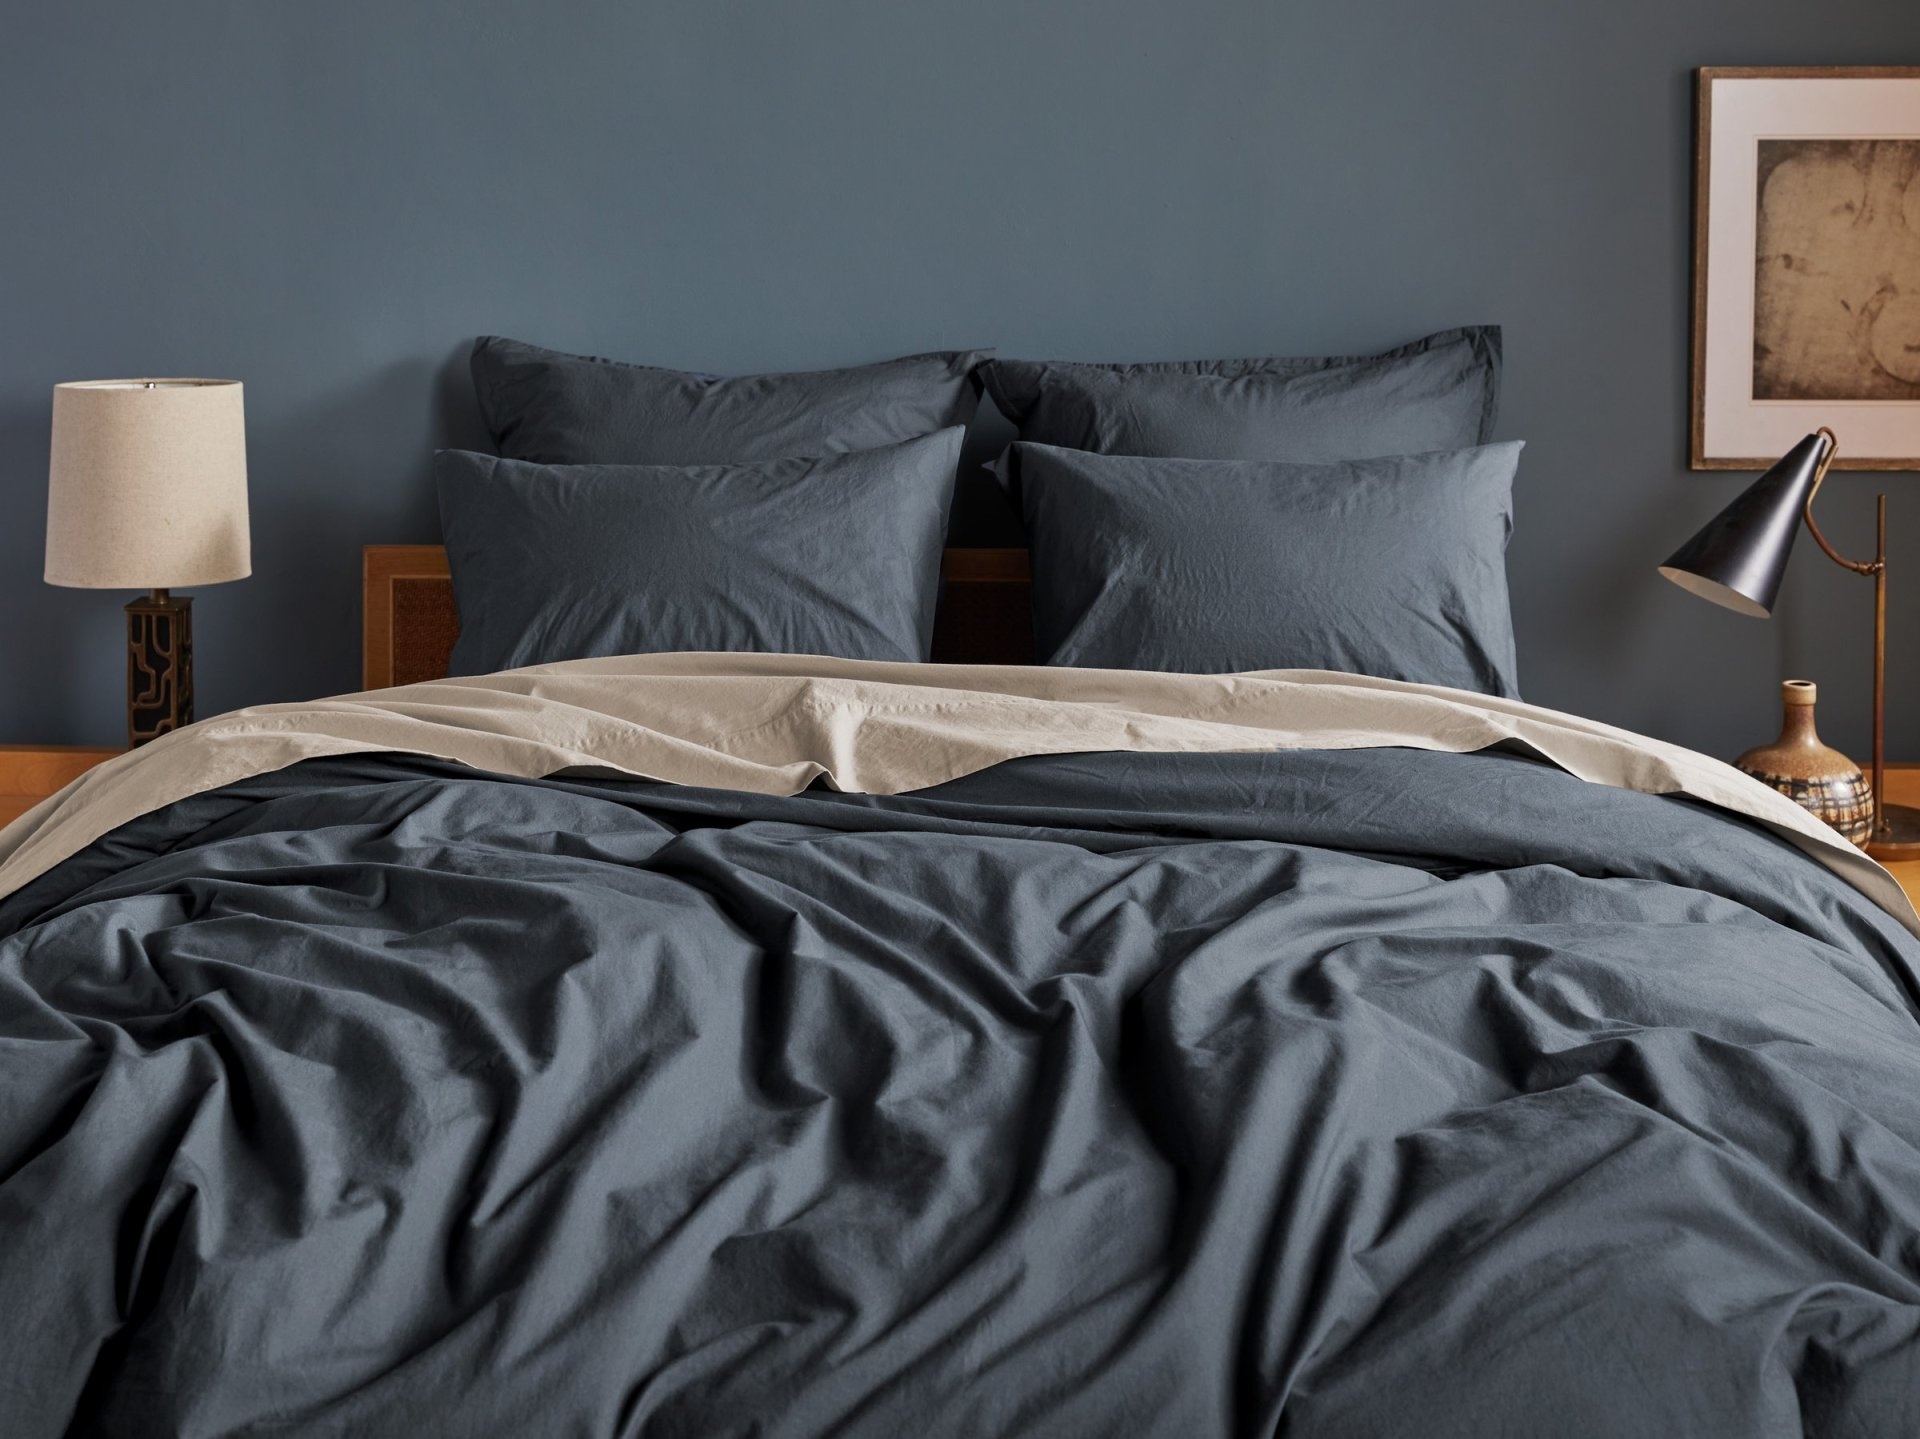 high end brushed cotton sheets